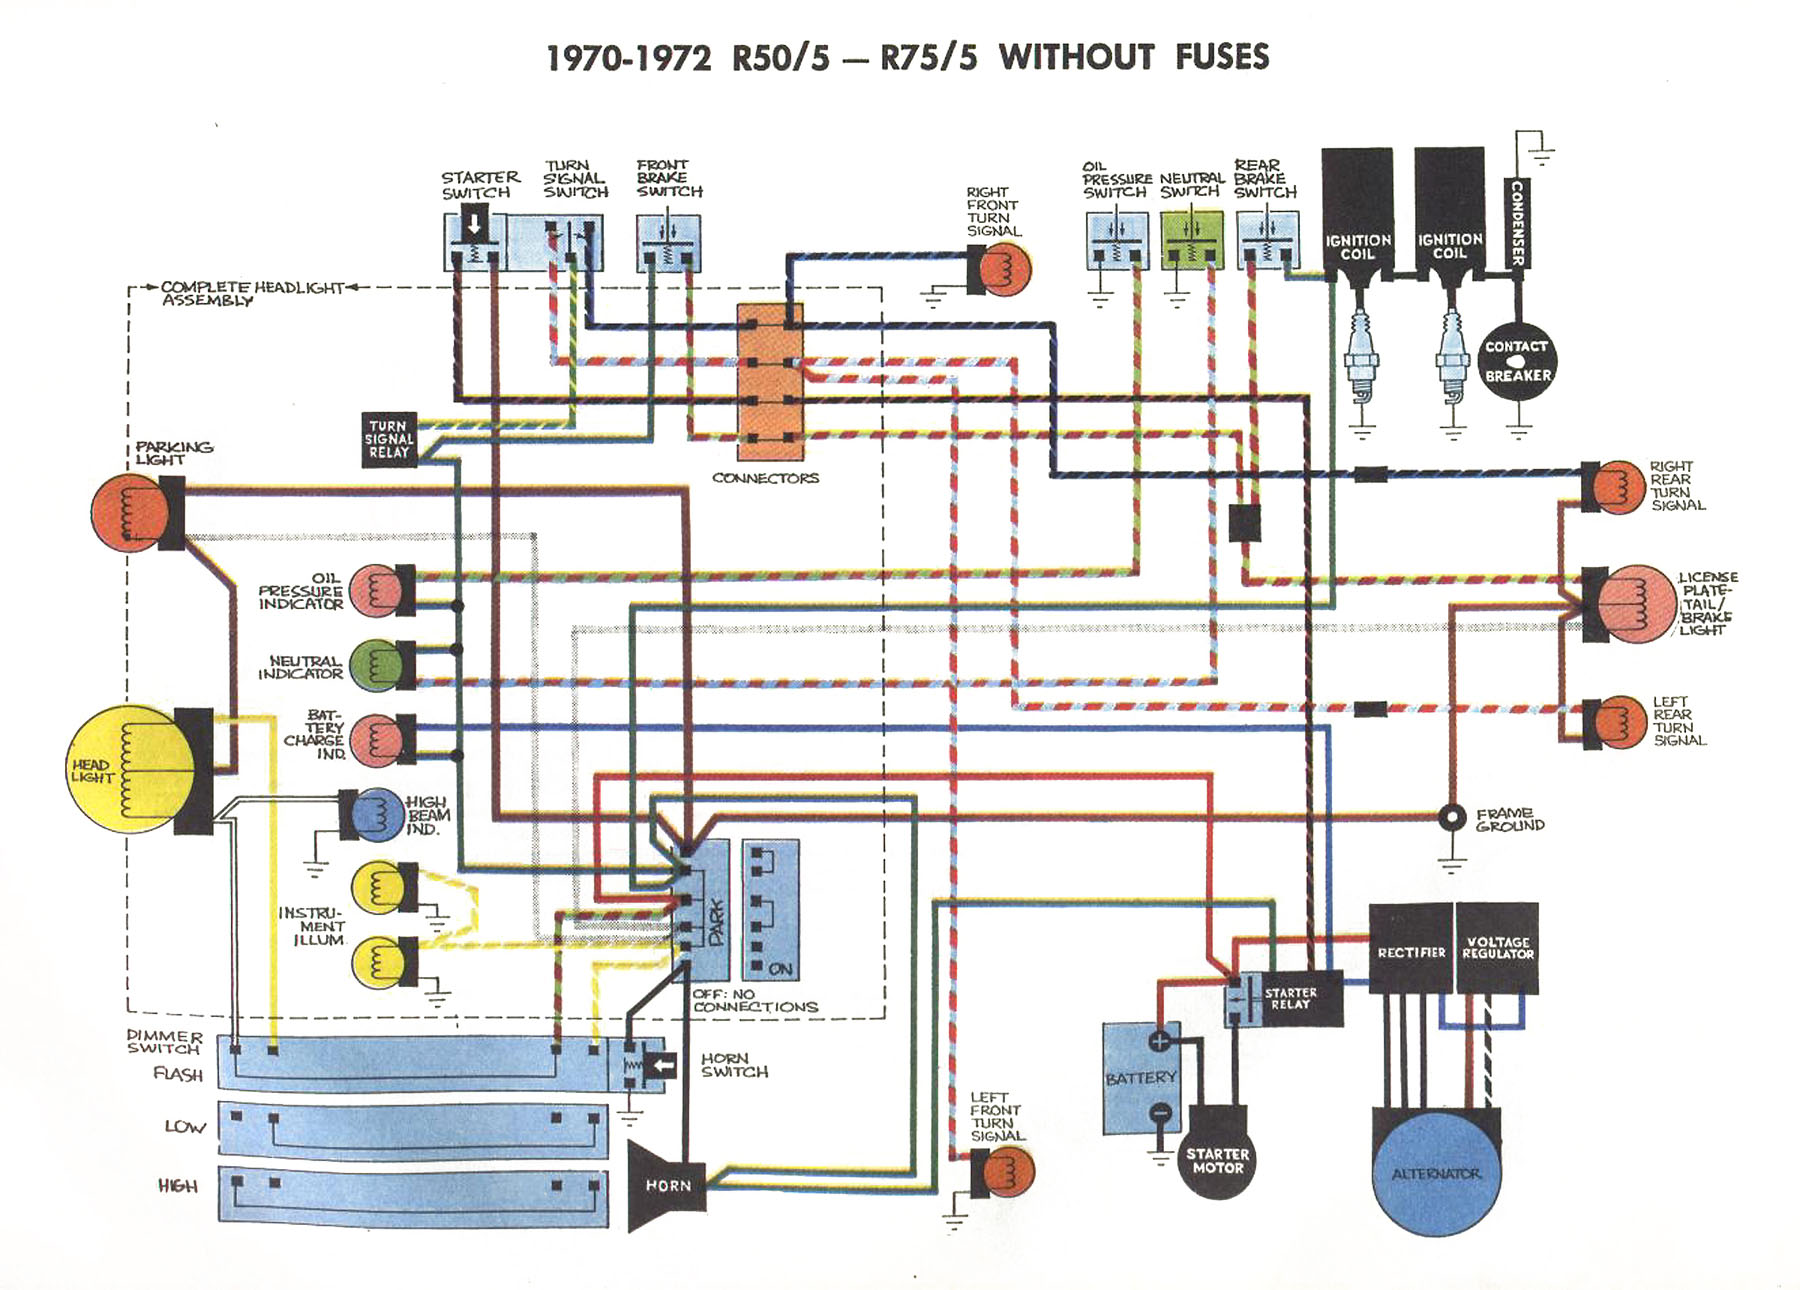 ... (without fuses) schematic.